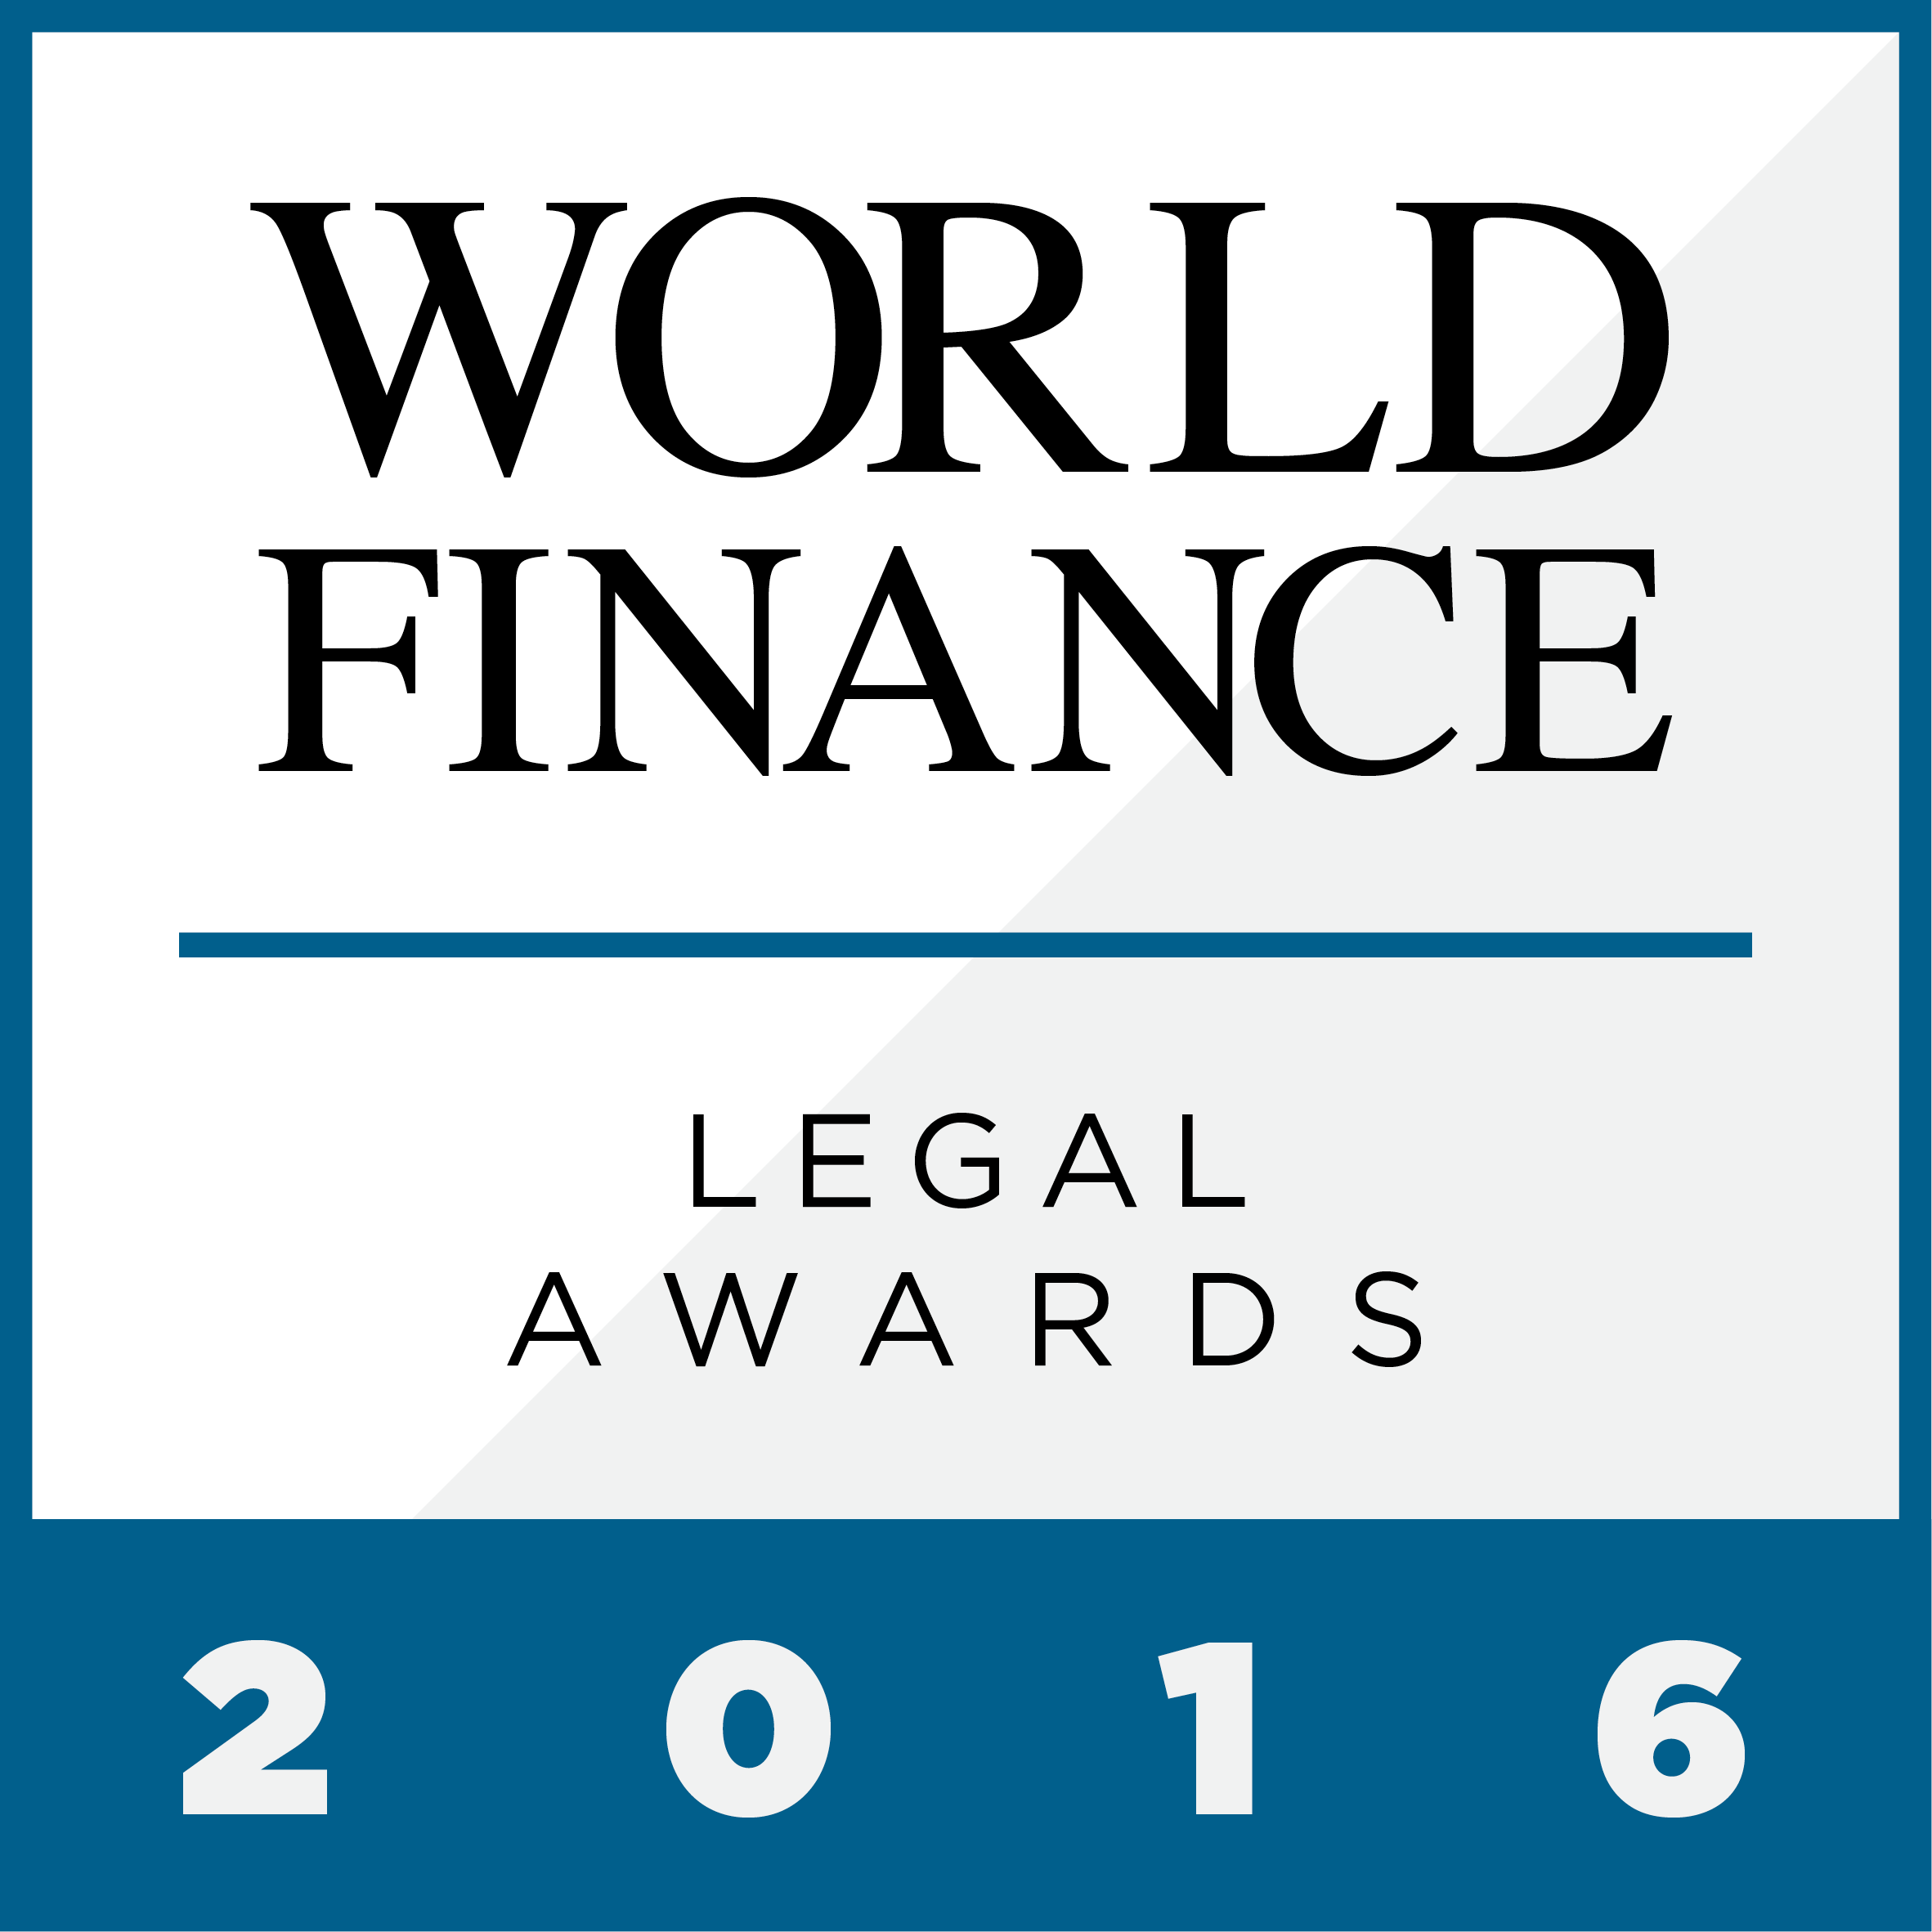 Despite an onslaught of dynamic challenges, the global law sector has achieved surprising gains in recent times. We look at those companies setting the pace in the World Finance Legal Awards 2016